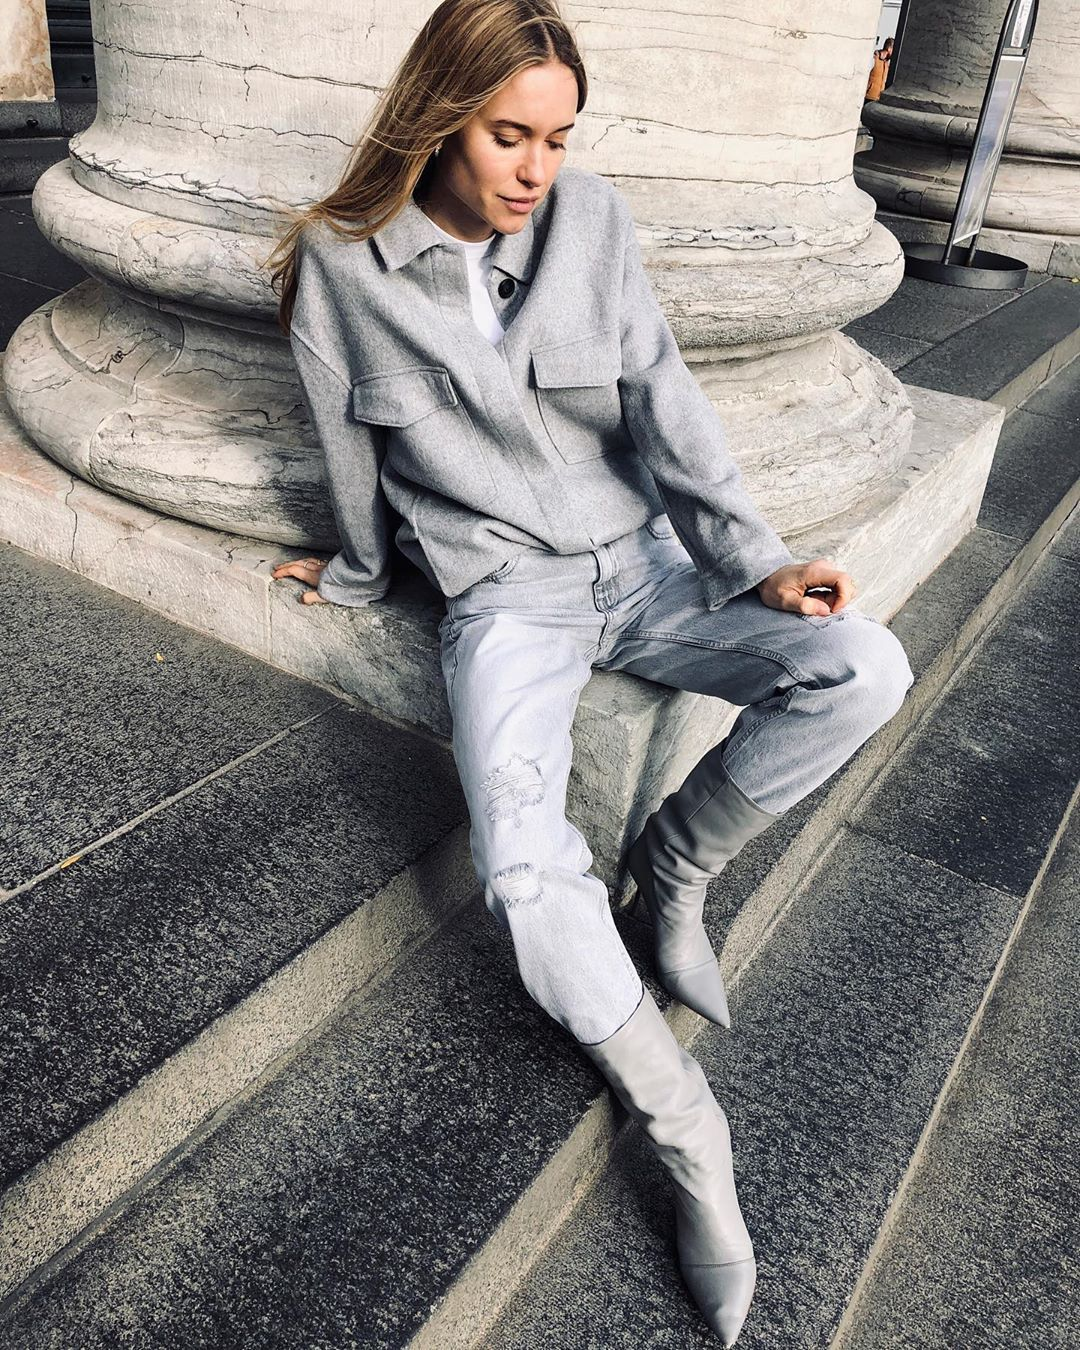 pernille-teisbaek-head-to-toe-grey-mango-outfit-fall-2019